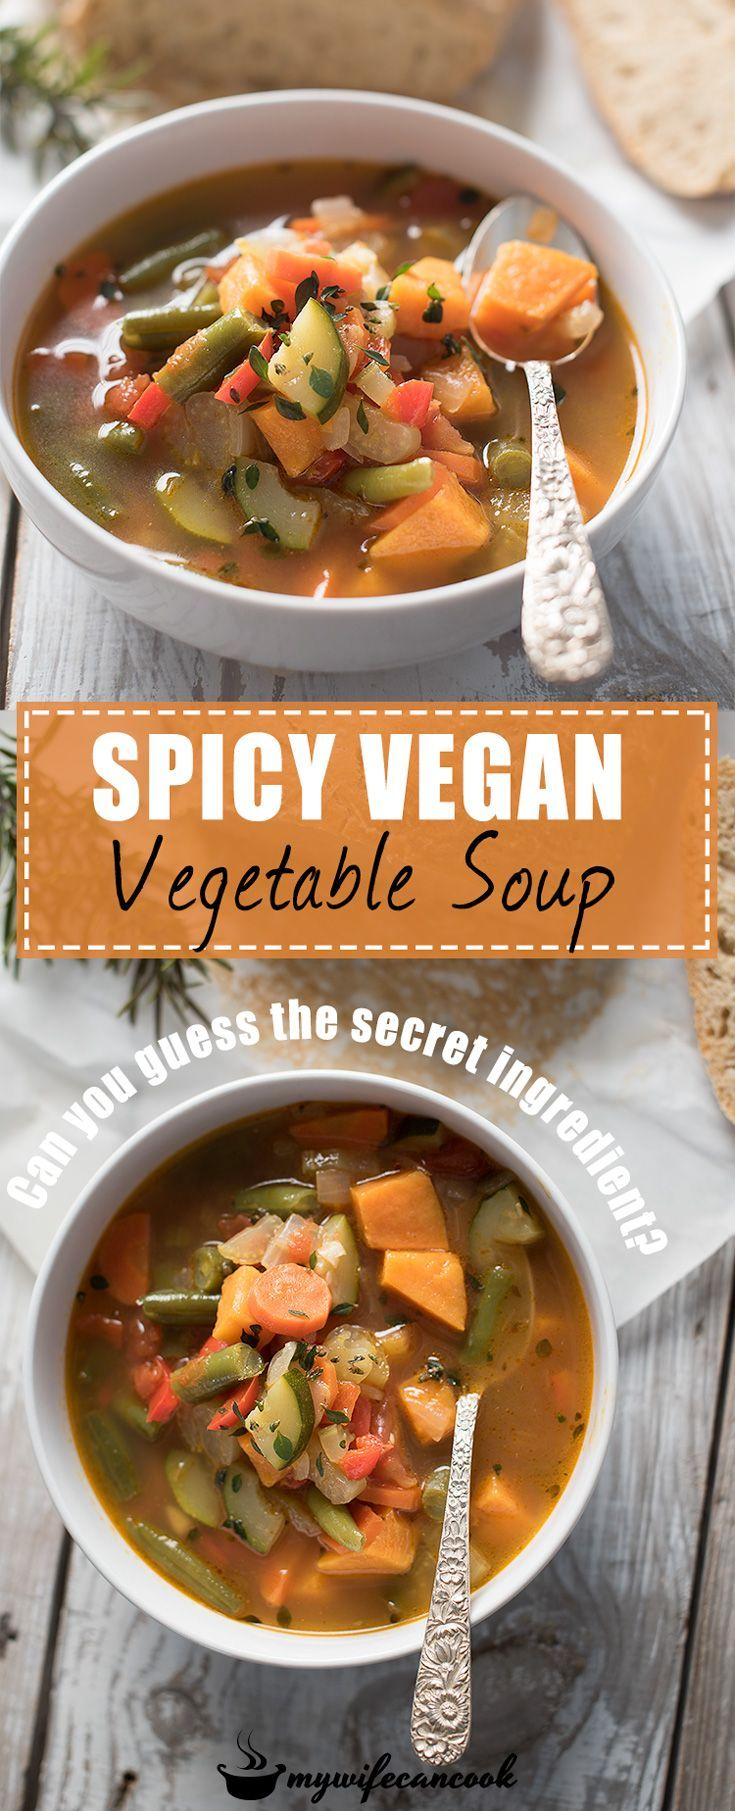 Easy Spicy Vegetable Soup Recipe Spicy Vegetable Soup Healthy Soup Recipes Vegan Vegetable Soup